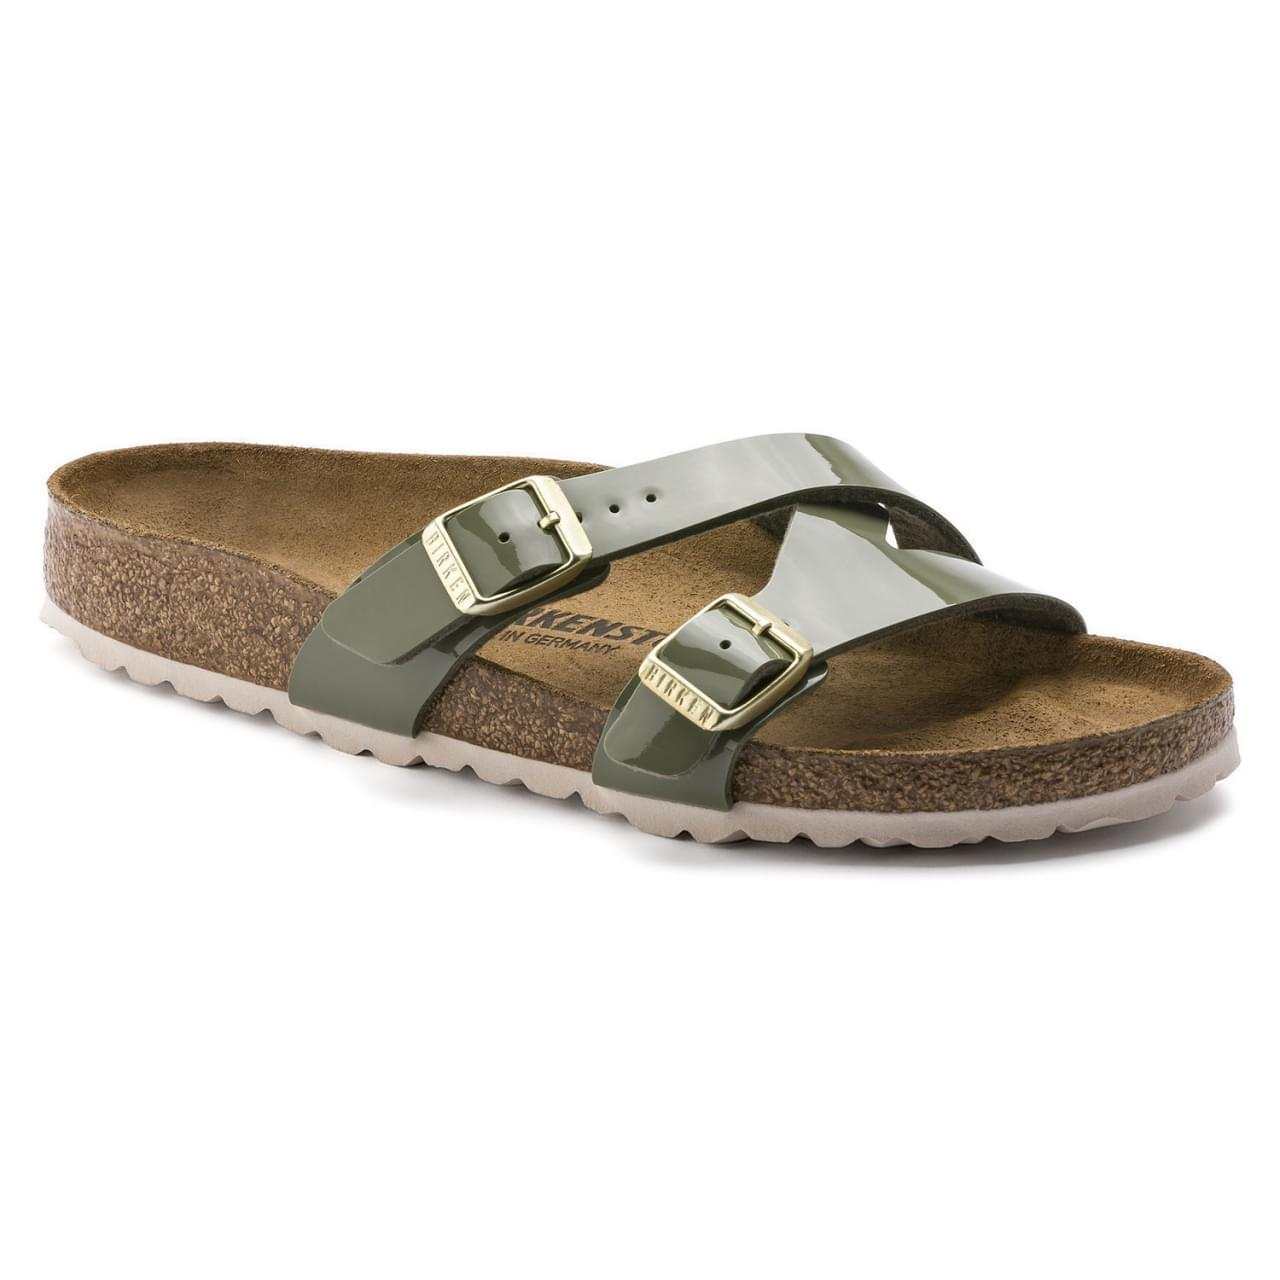 Birkenstock Yao Balance Narrow Slipper Dames